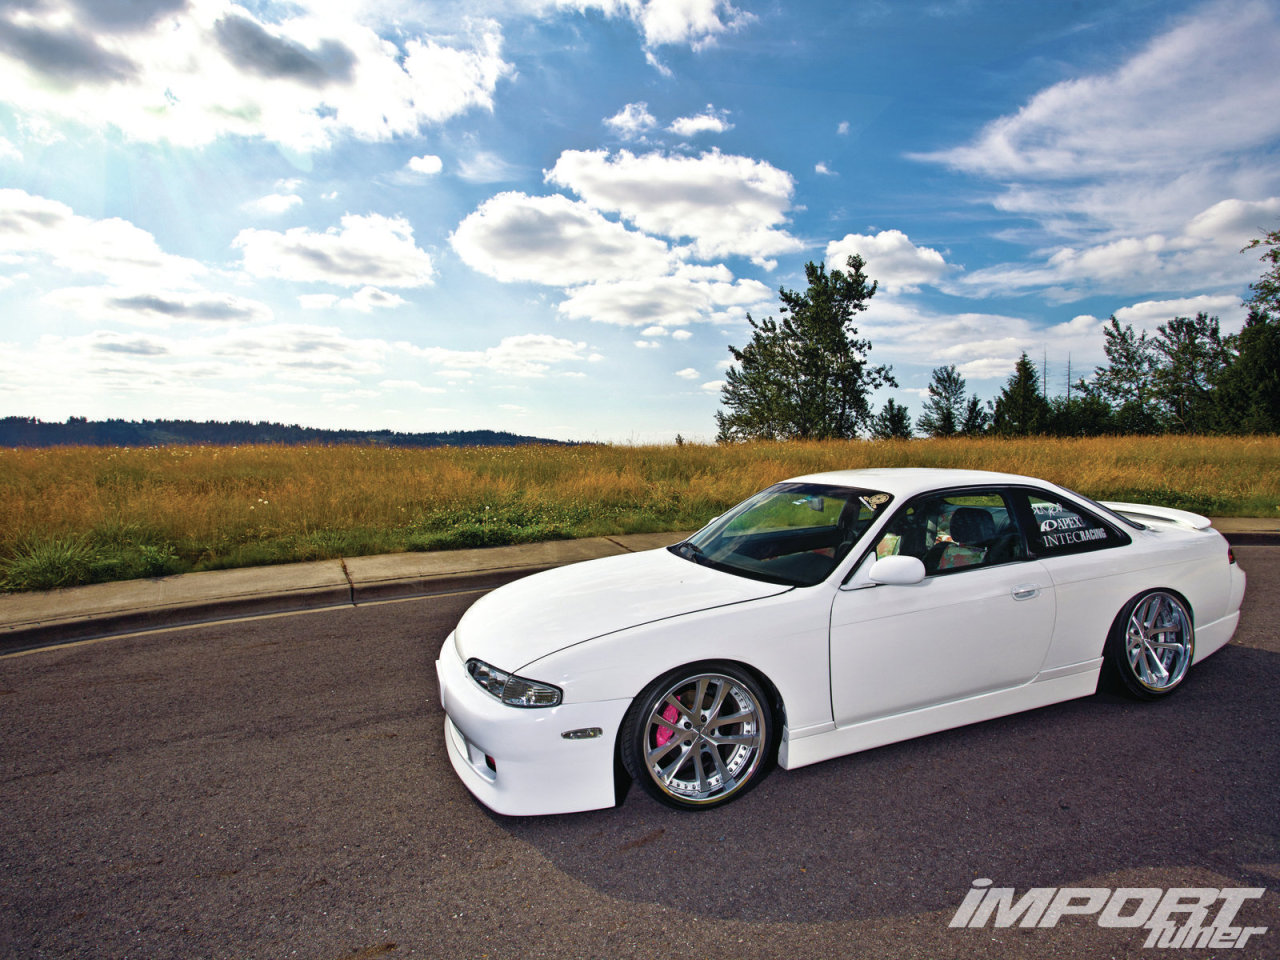 lancelash:  officialpresidentkony2013:  engine-lock:  Import Tuner Car Feature: 1995 Nissan 240SX  those seats are so fucking rad  I need that seat and interior pattern!